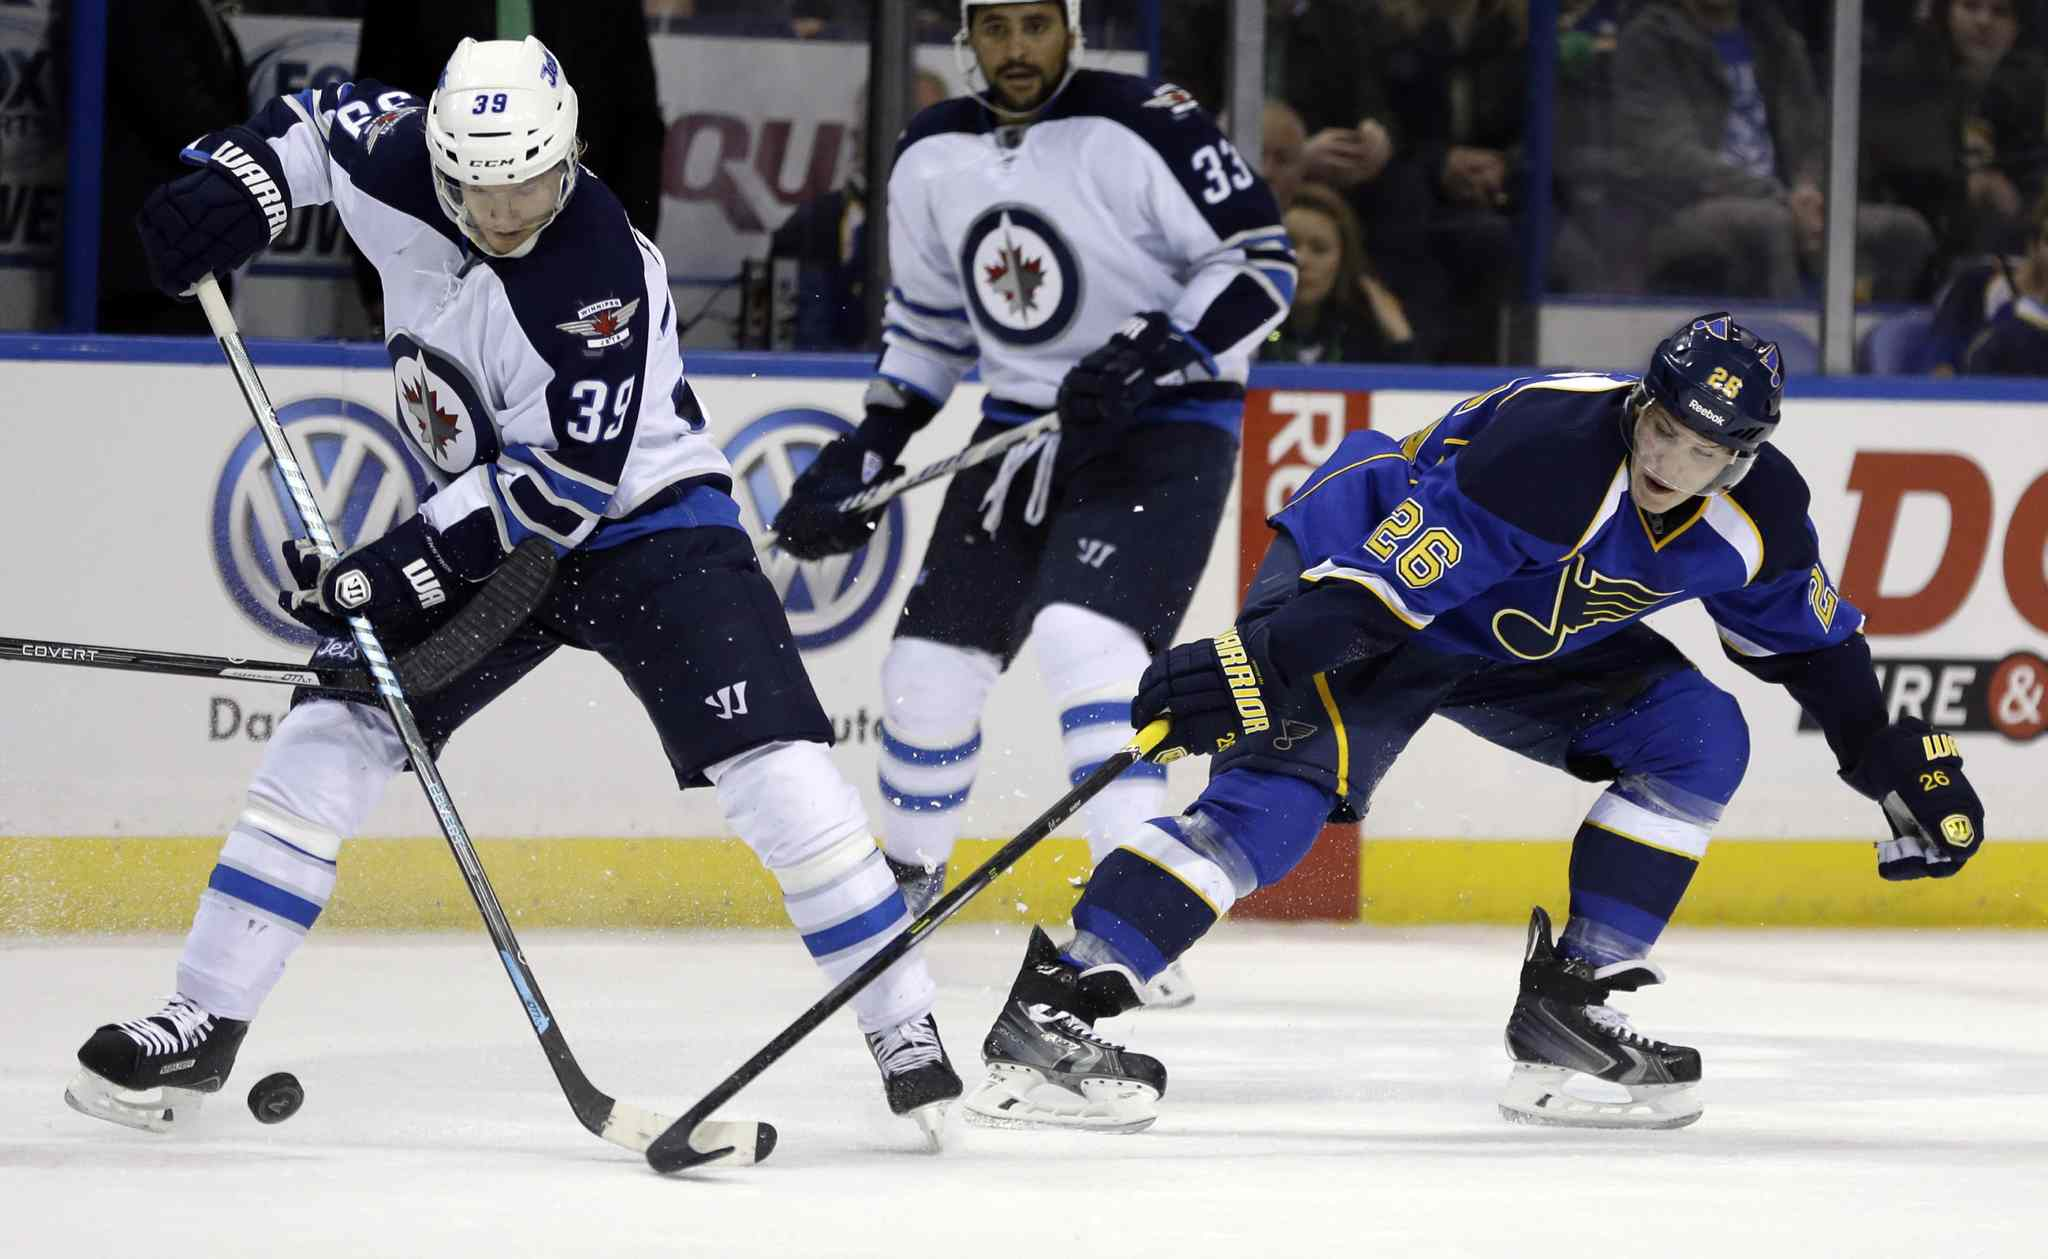 Jets defenceman Tobias Enstrom controls the puck as the Blues' Dmitrij Jaskin defends during the second period.